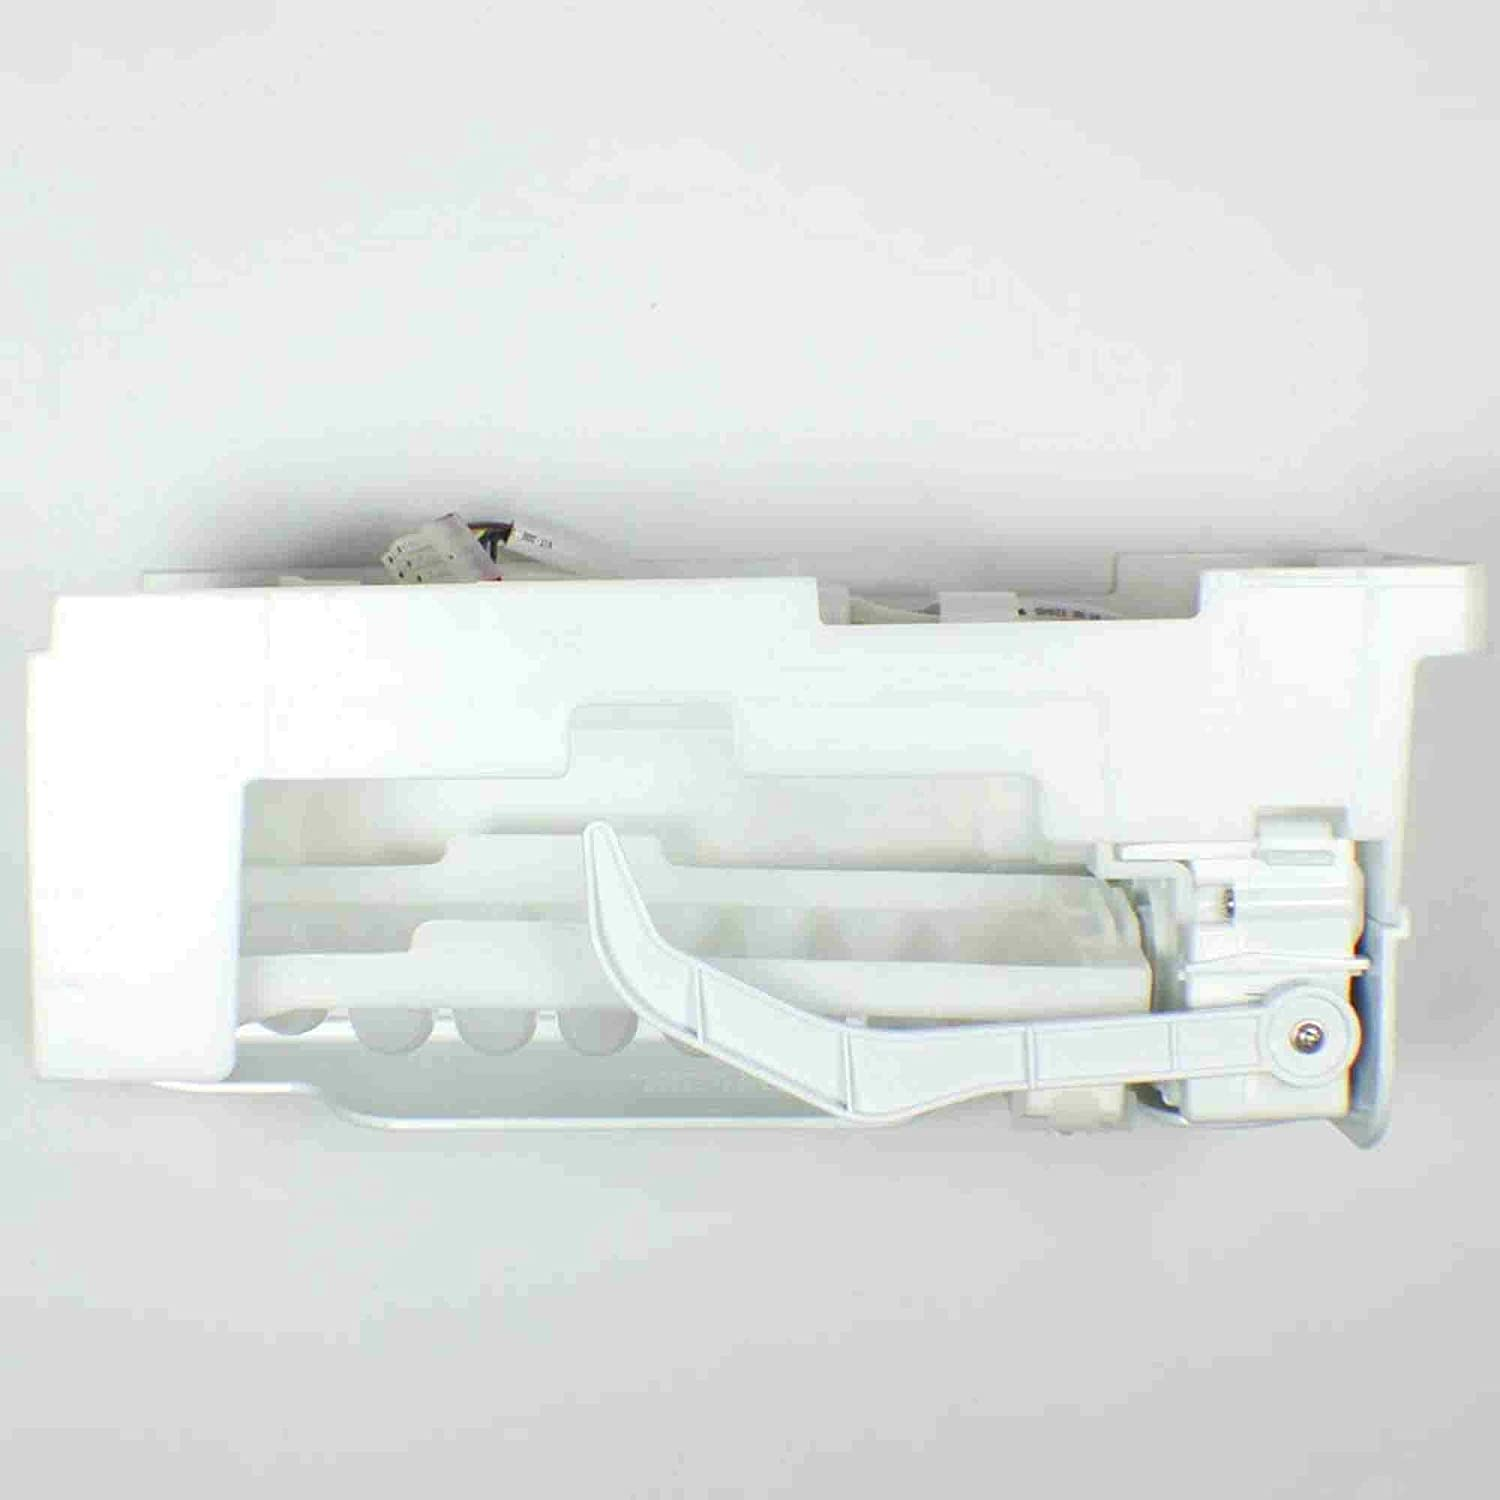 Samsung DA97-07603B Refrigerator Ice Maker Assembly Genuine Original Equipment Manufacturer (OEM) Part